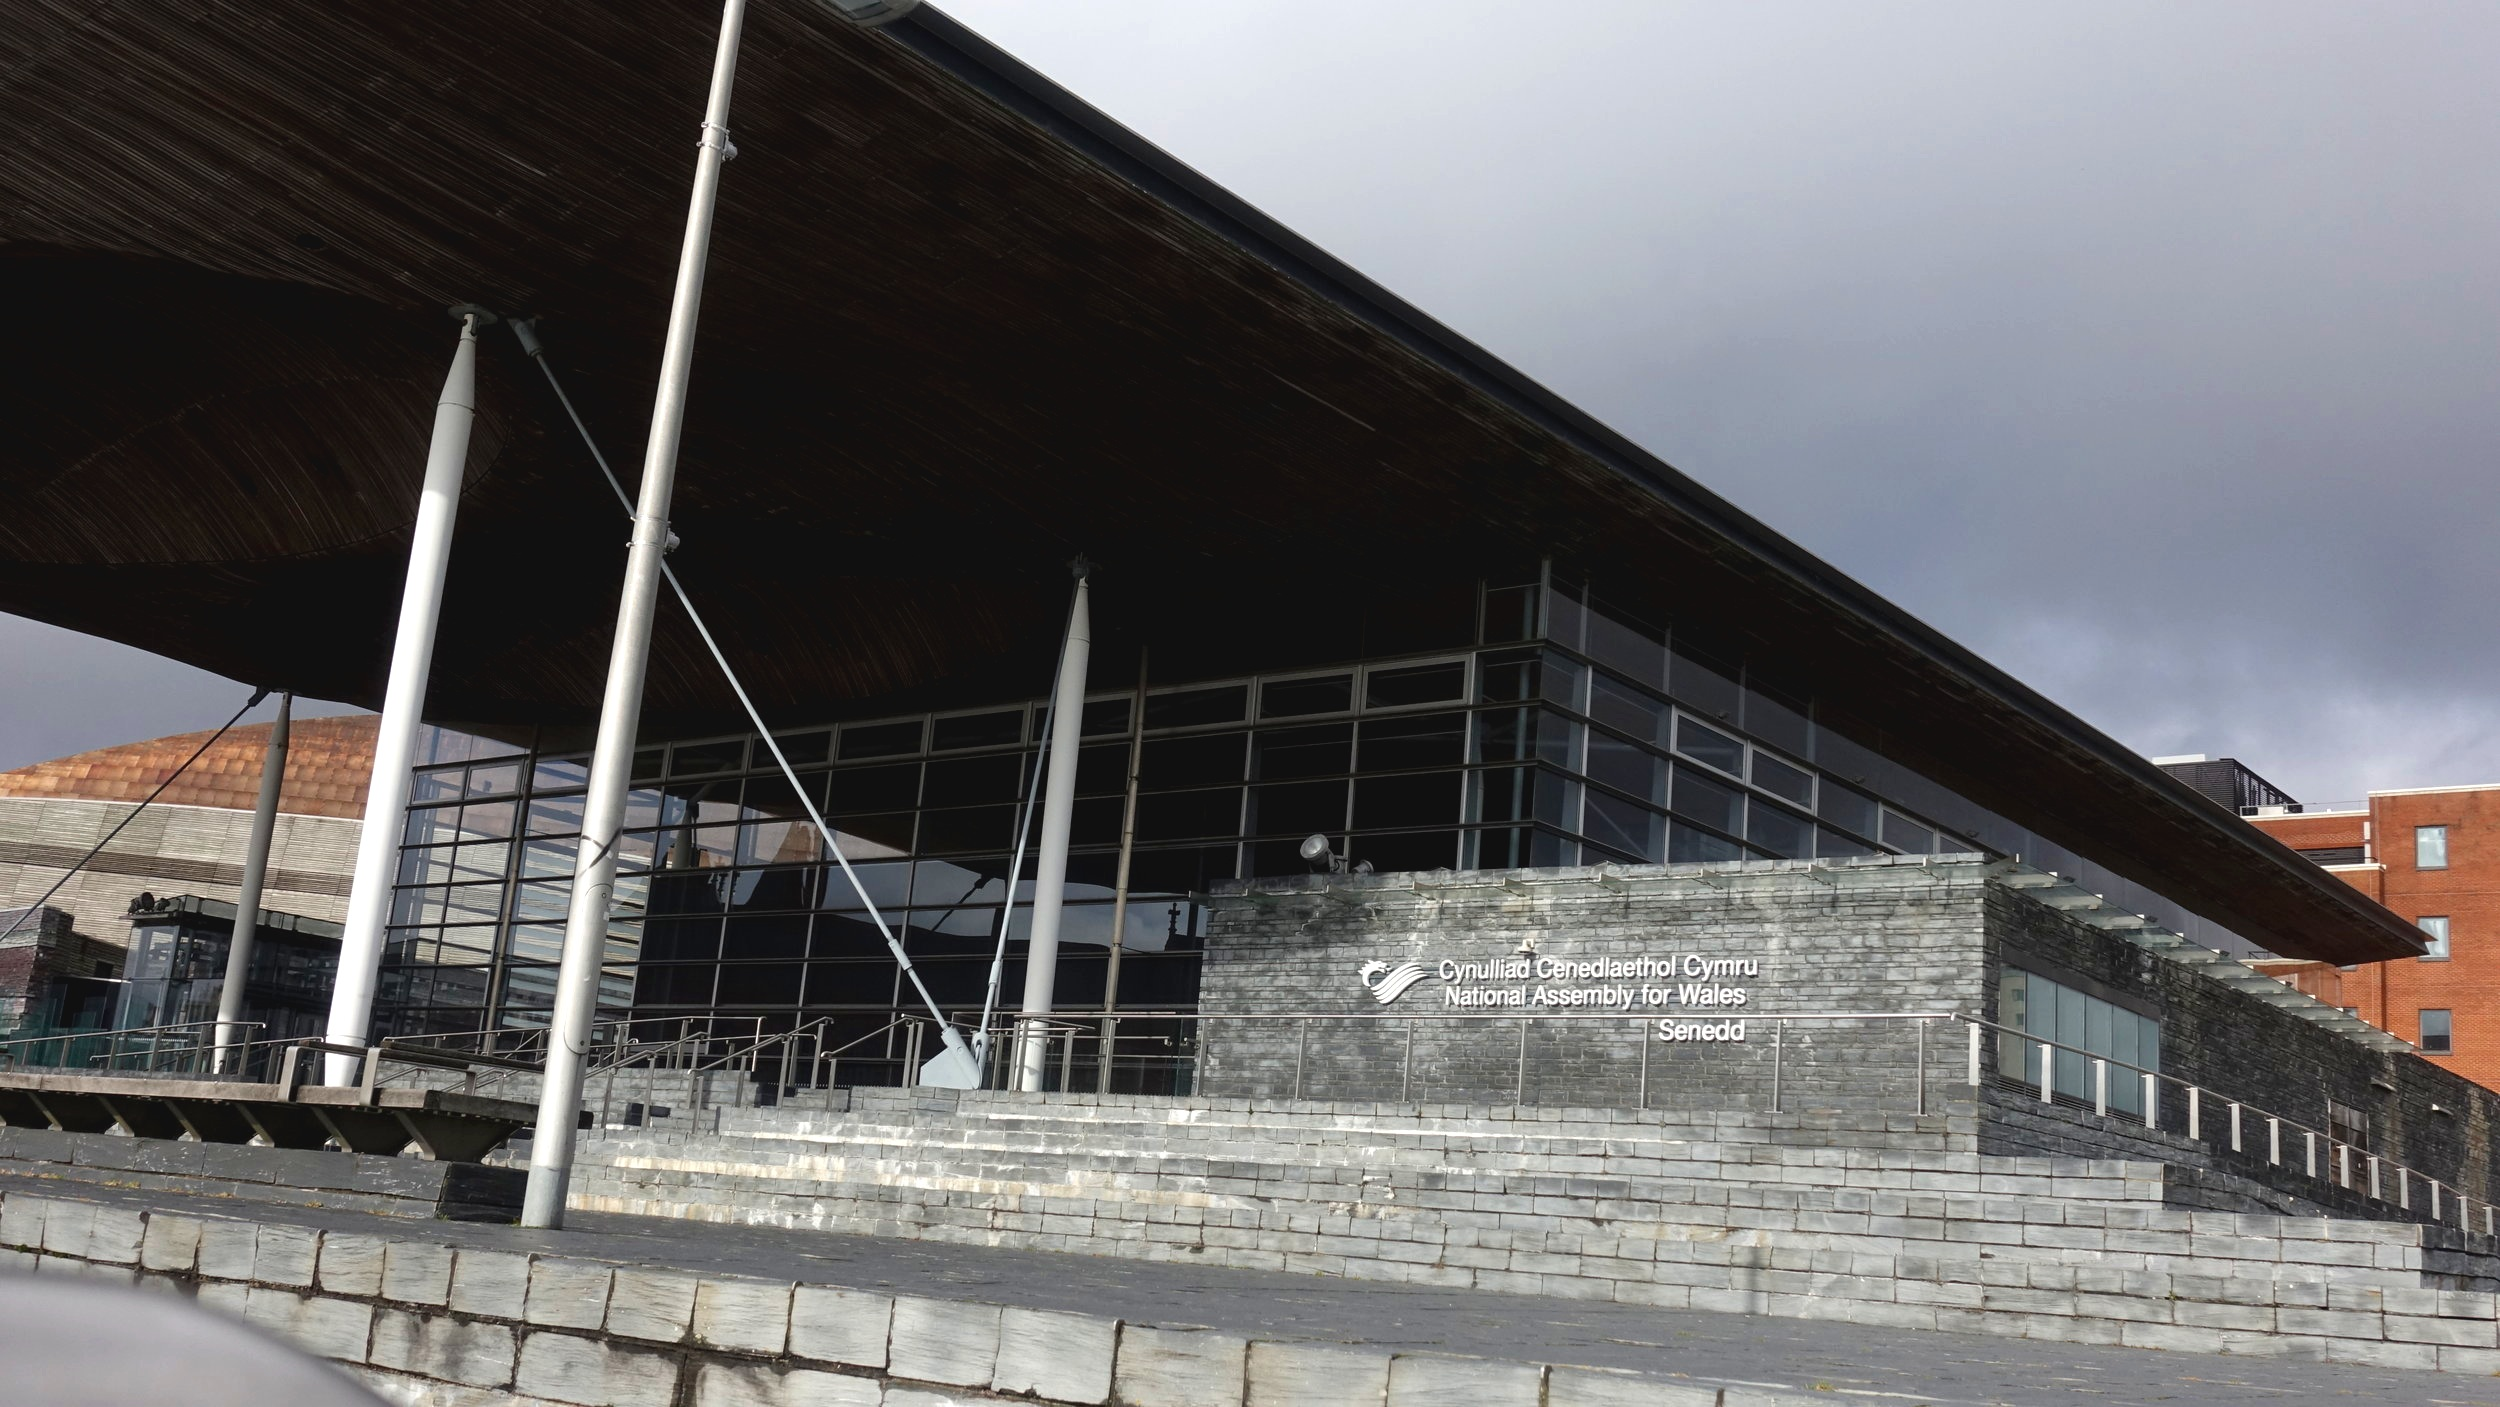 Exhibition venue - Senedd, Cardiff Bay. Image © Brian Carroll